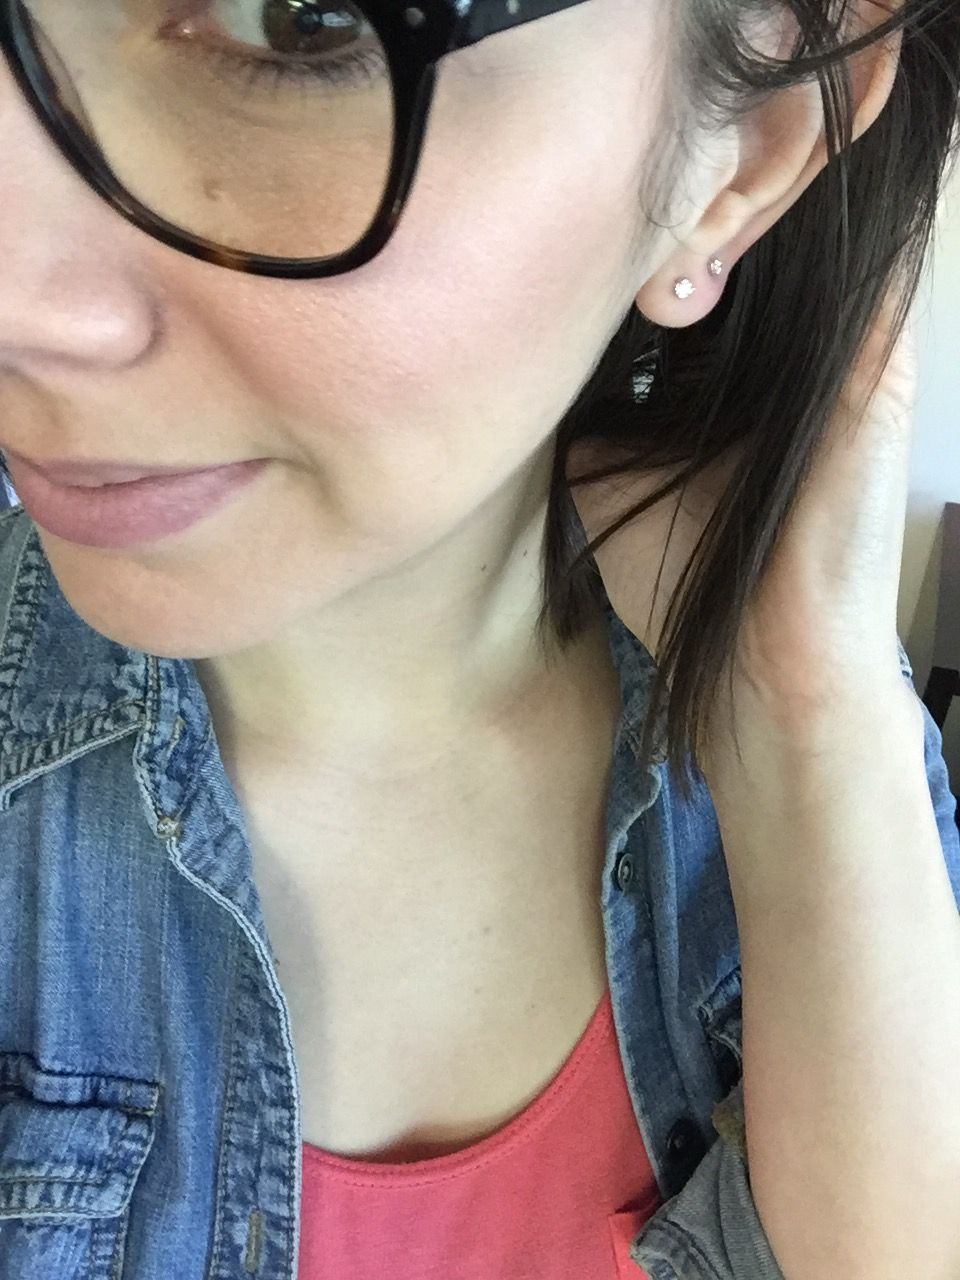 Diamond Stud Earrings Go With Literally Any Outfit Style Of Gles Ear Lobe Size Stack Them Up